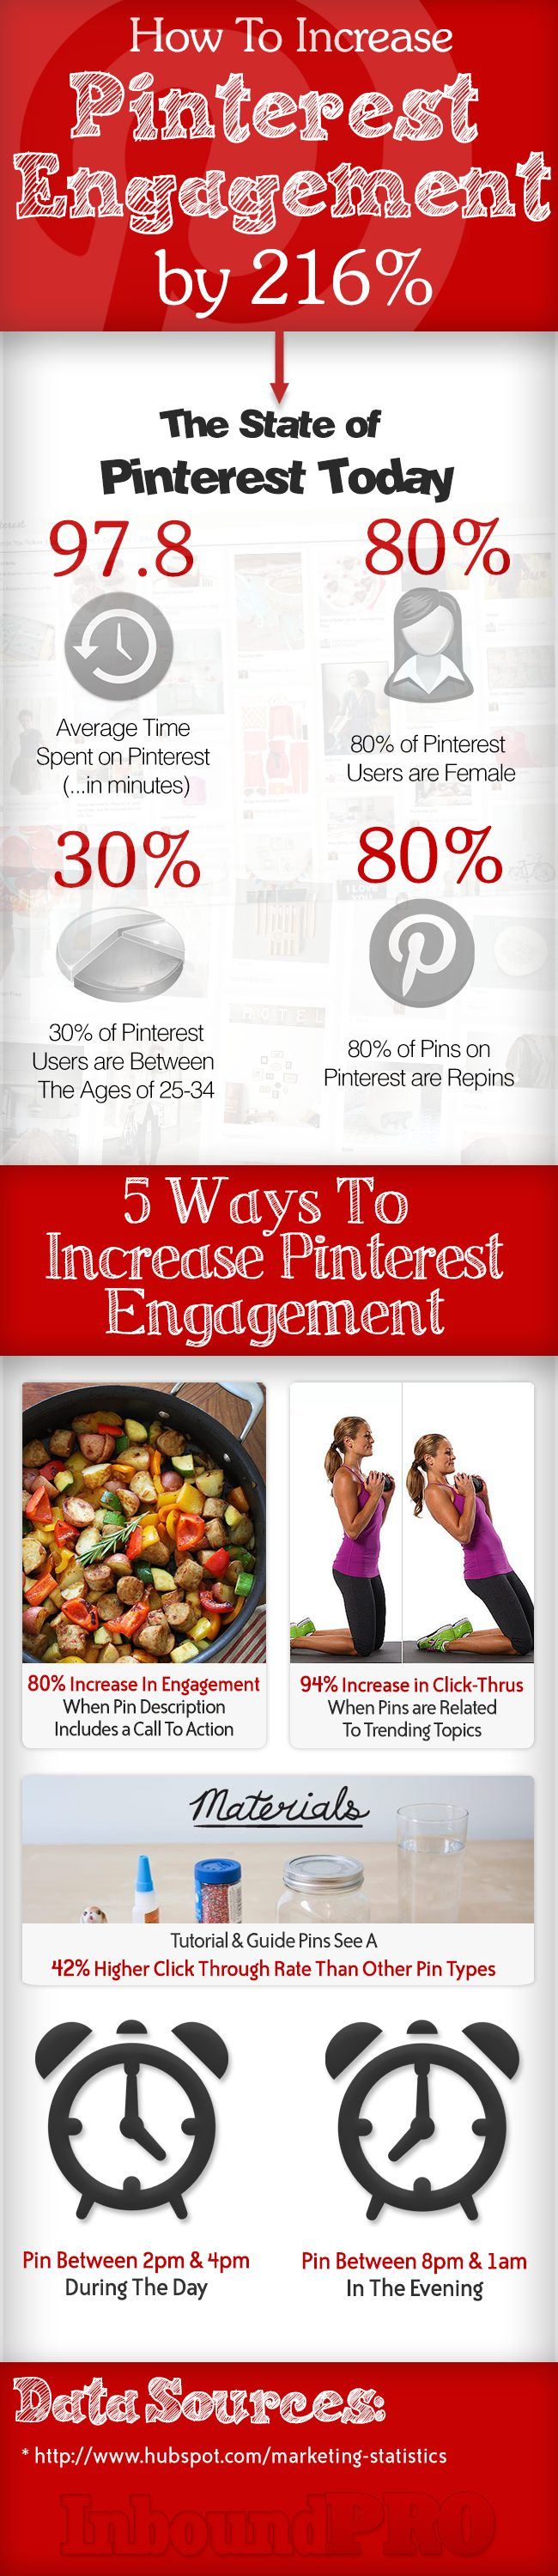 Increase Pinterest Engagement